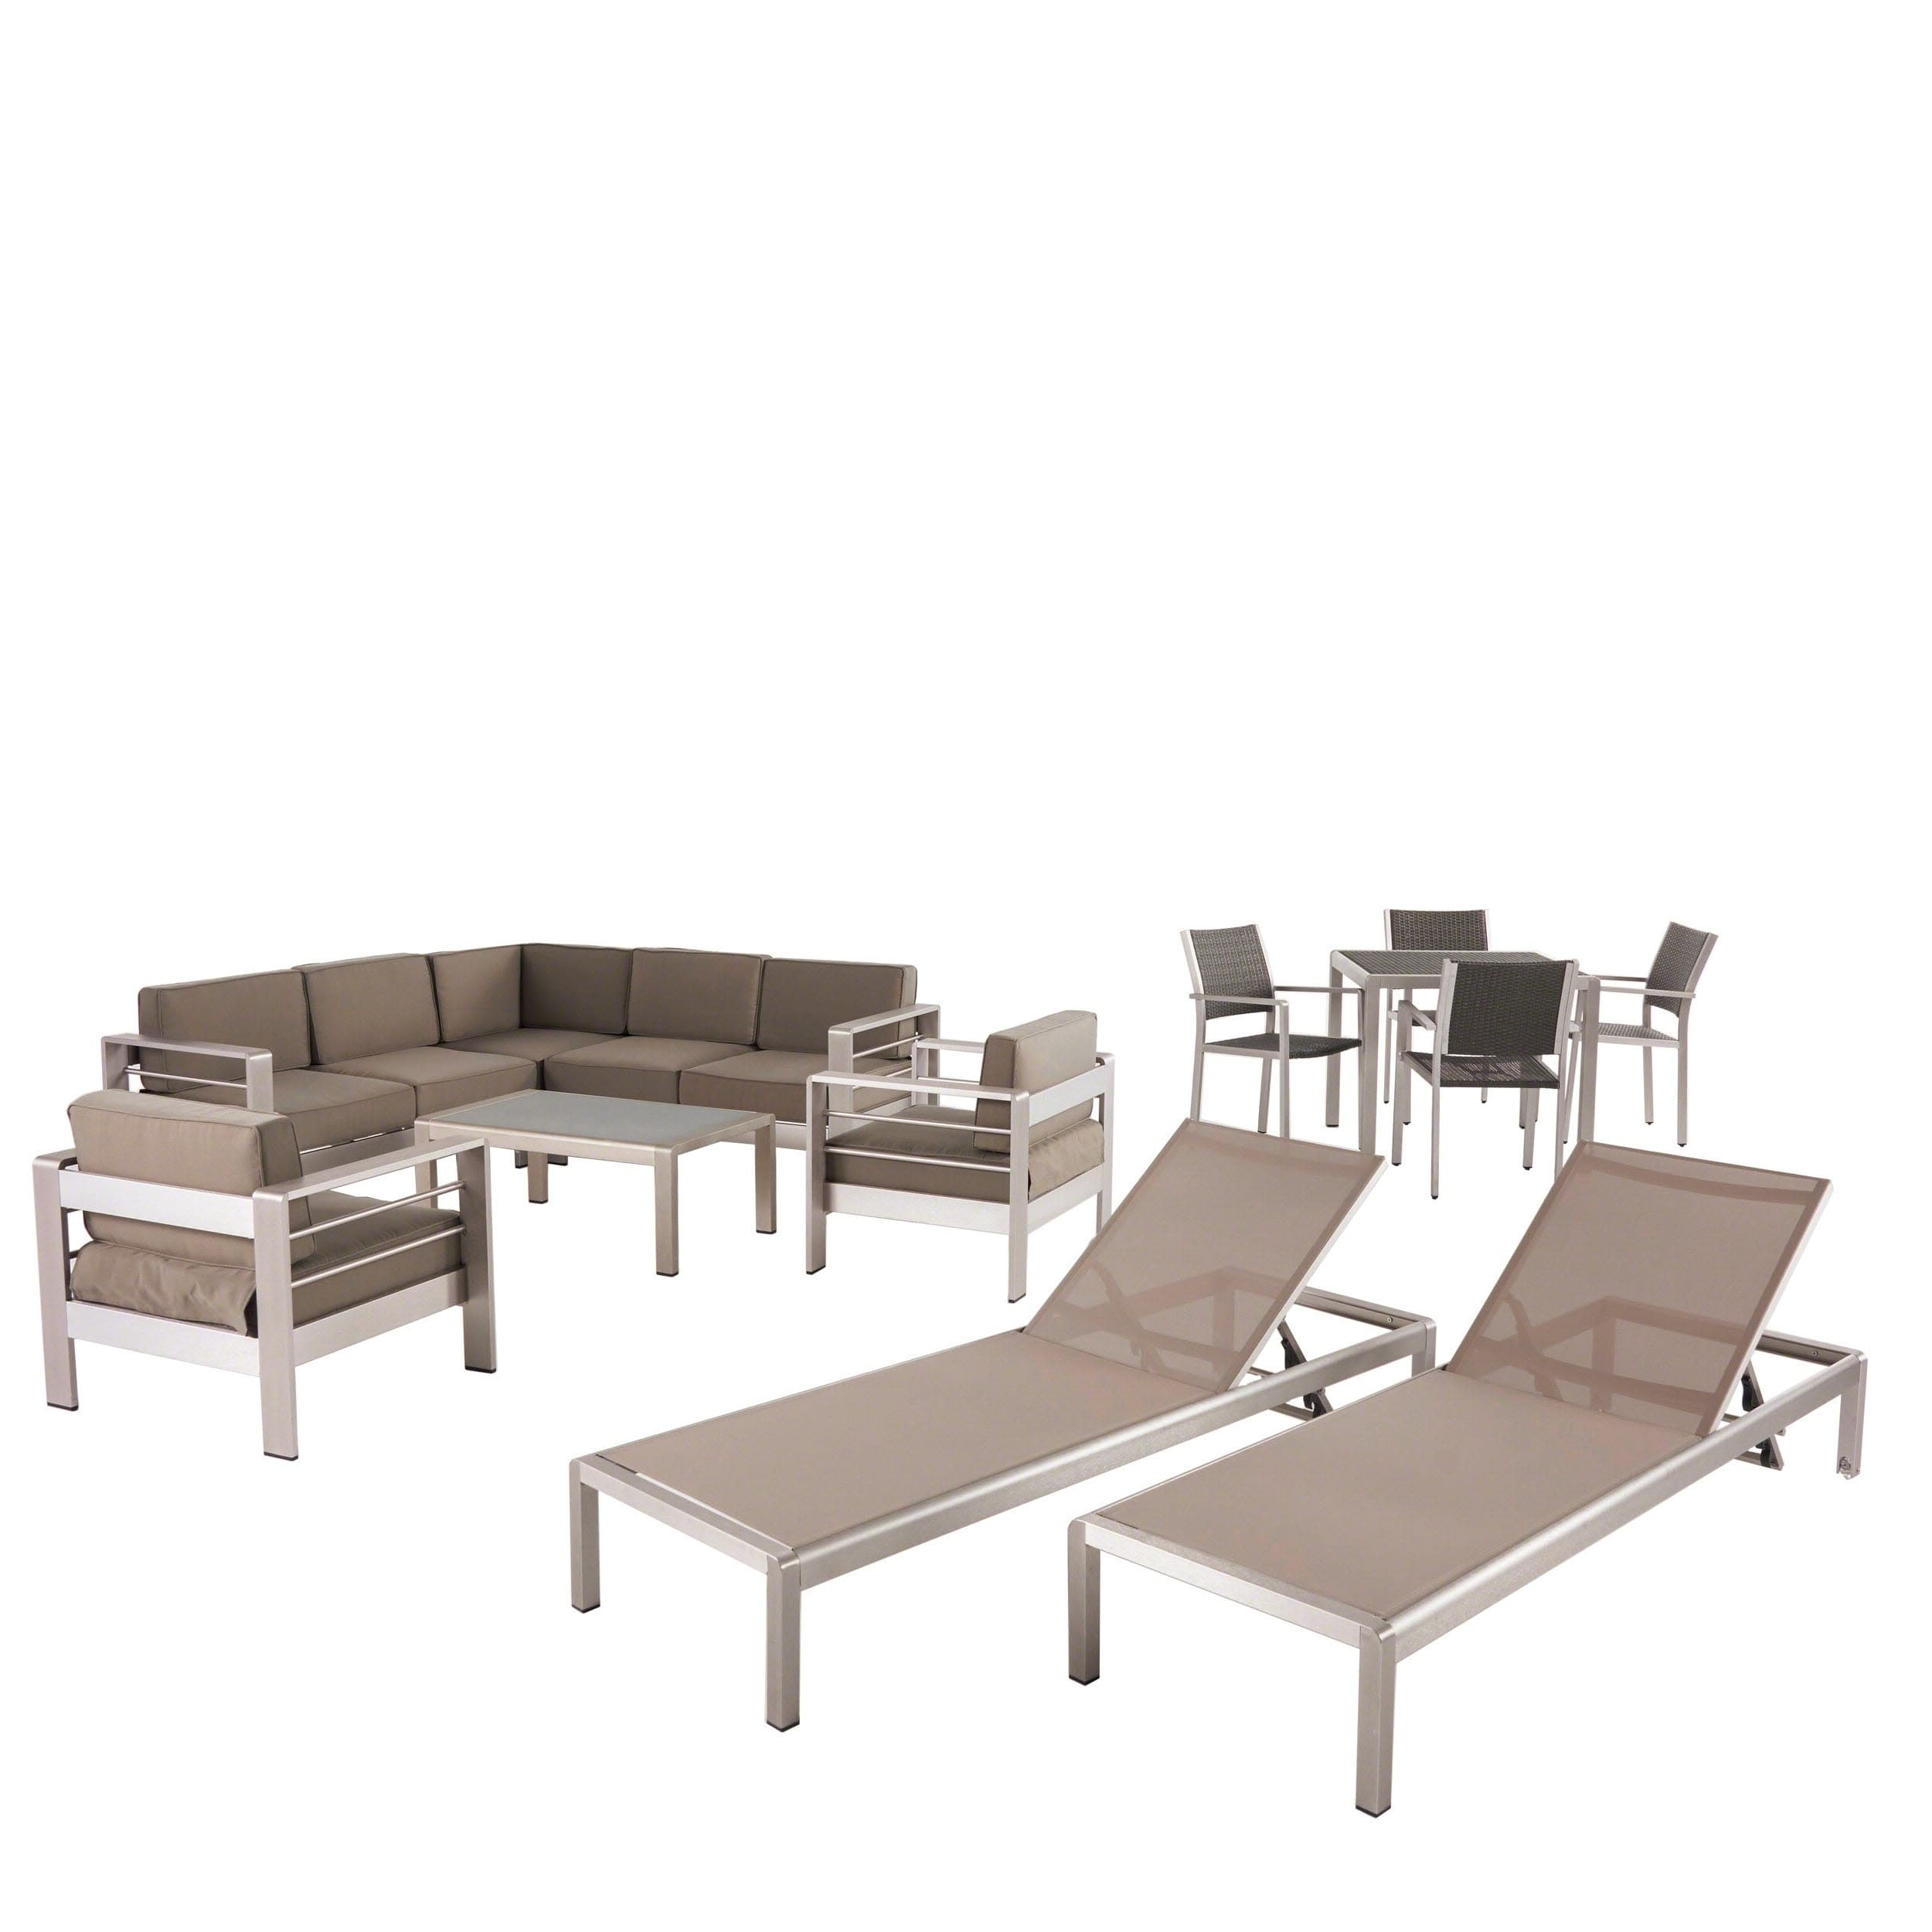 Preferred Christopher Knight Home Cape Coral Outdoor Dining Set + Sectional Sofa Set + Club Chairs + Chaise Lounges + Coffee Table By Pertaining To Cape Coral Outdoor Chaise Lounges With Cushion (View 24 of 25)